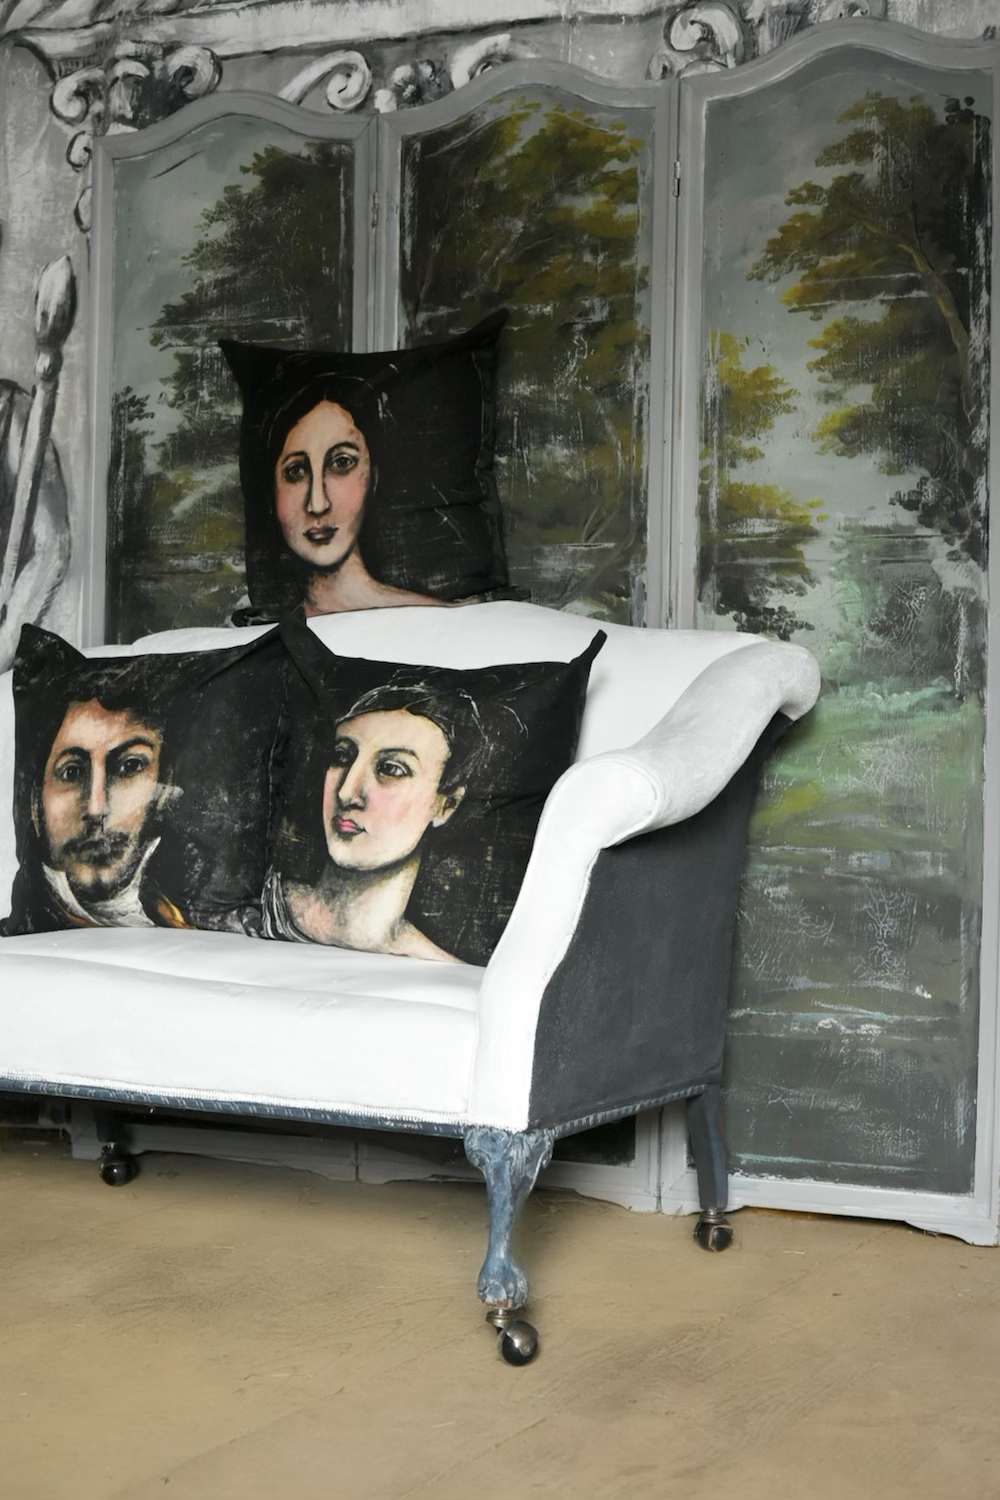 Antique inspired portrait pillows produced by Jennifer Lanne artist  for Decorum